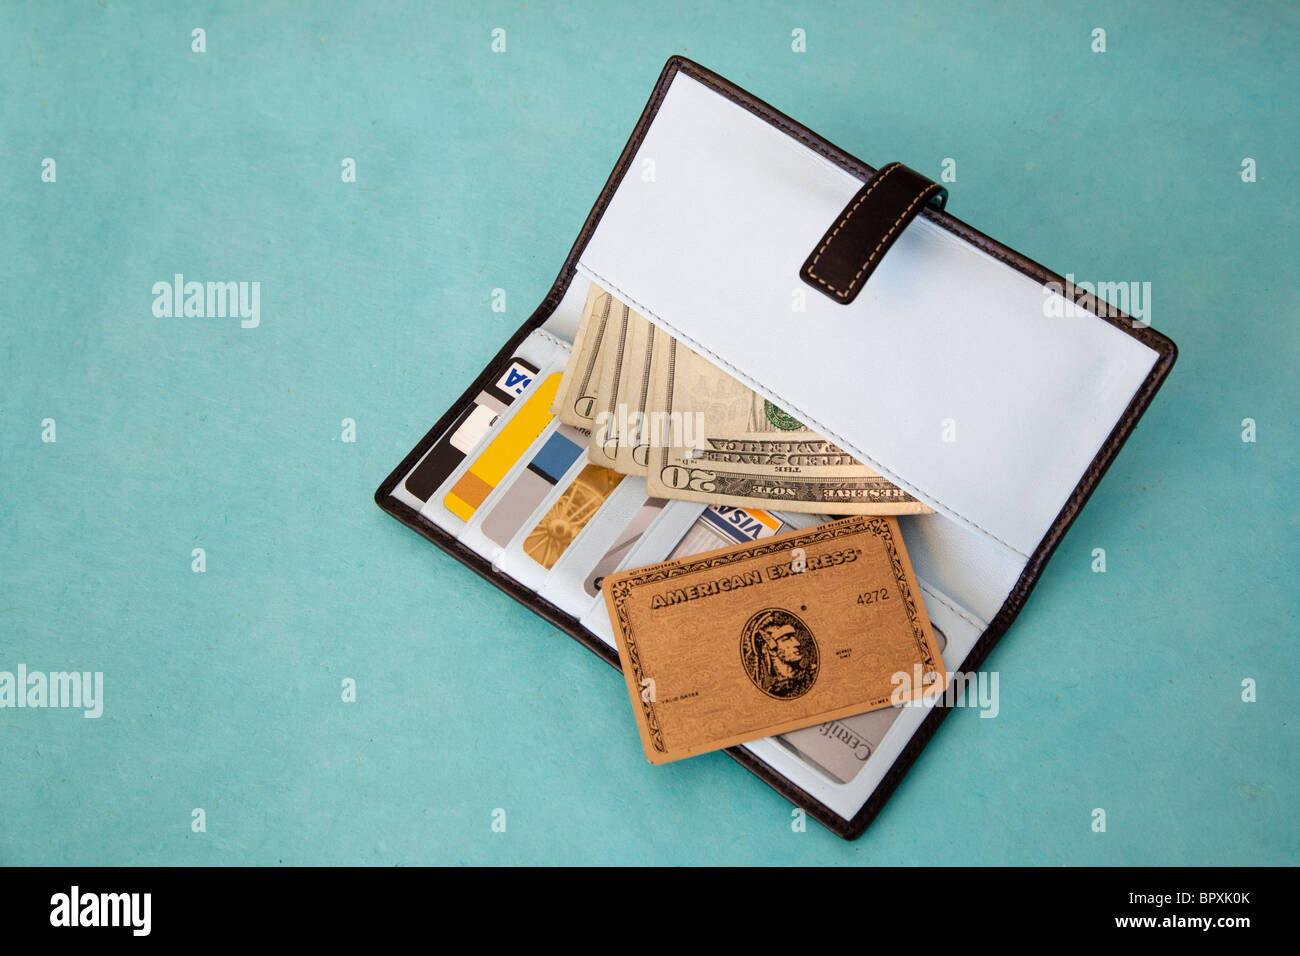 detail showing contents of wallet - Stock Image